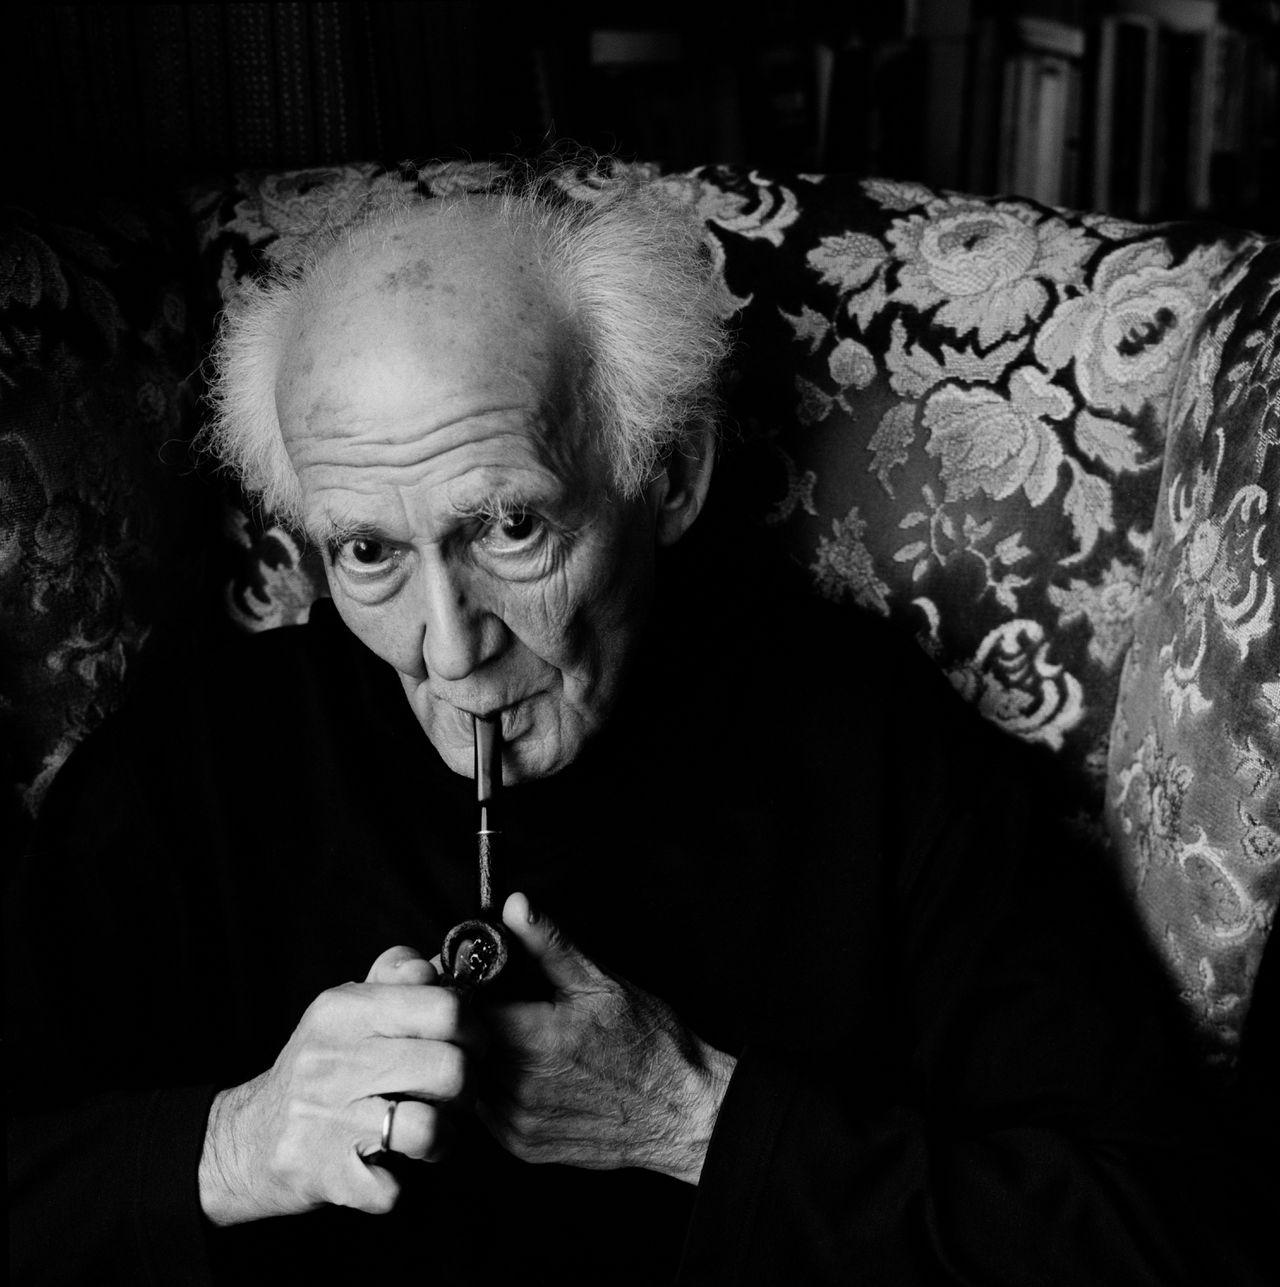 Foto Camera Press/Hollandse Hoogte D 33659-02 Zygmunt Bauman. Obligatory Credit - CAMERA PRESS/Eamonn McCabe. SPECIAL PRICE APPLIES - CONSULT CAMERA PRESS OR ITS LOCAL AGENT. FILE. Born in 1925, in Poland, Bauman is one of the best known sociologists and philosophers in the world. His name is often mentioned as a principal creator of the concept of